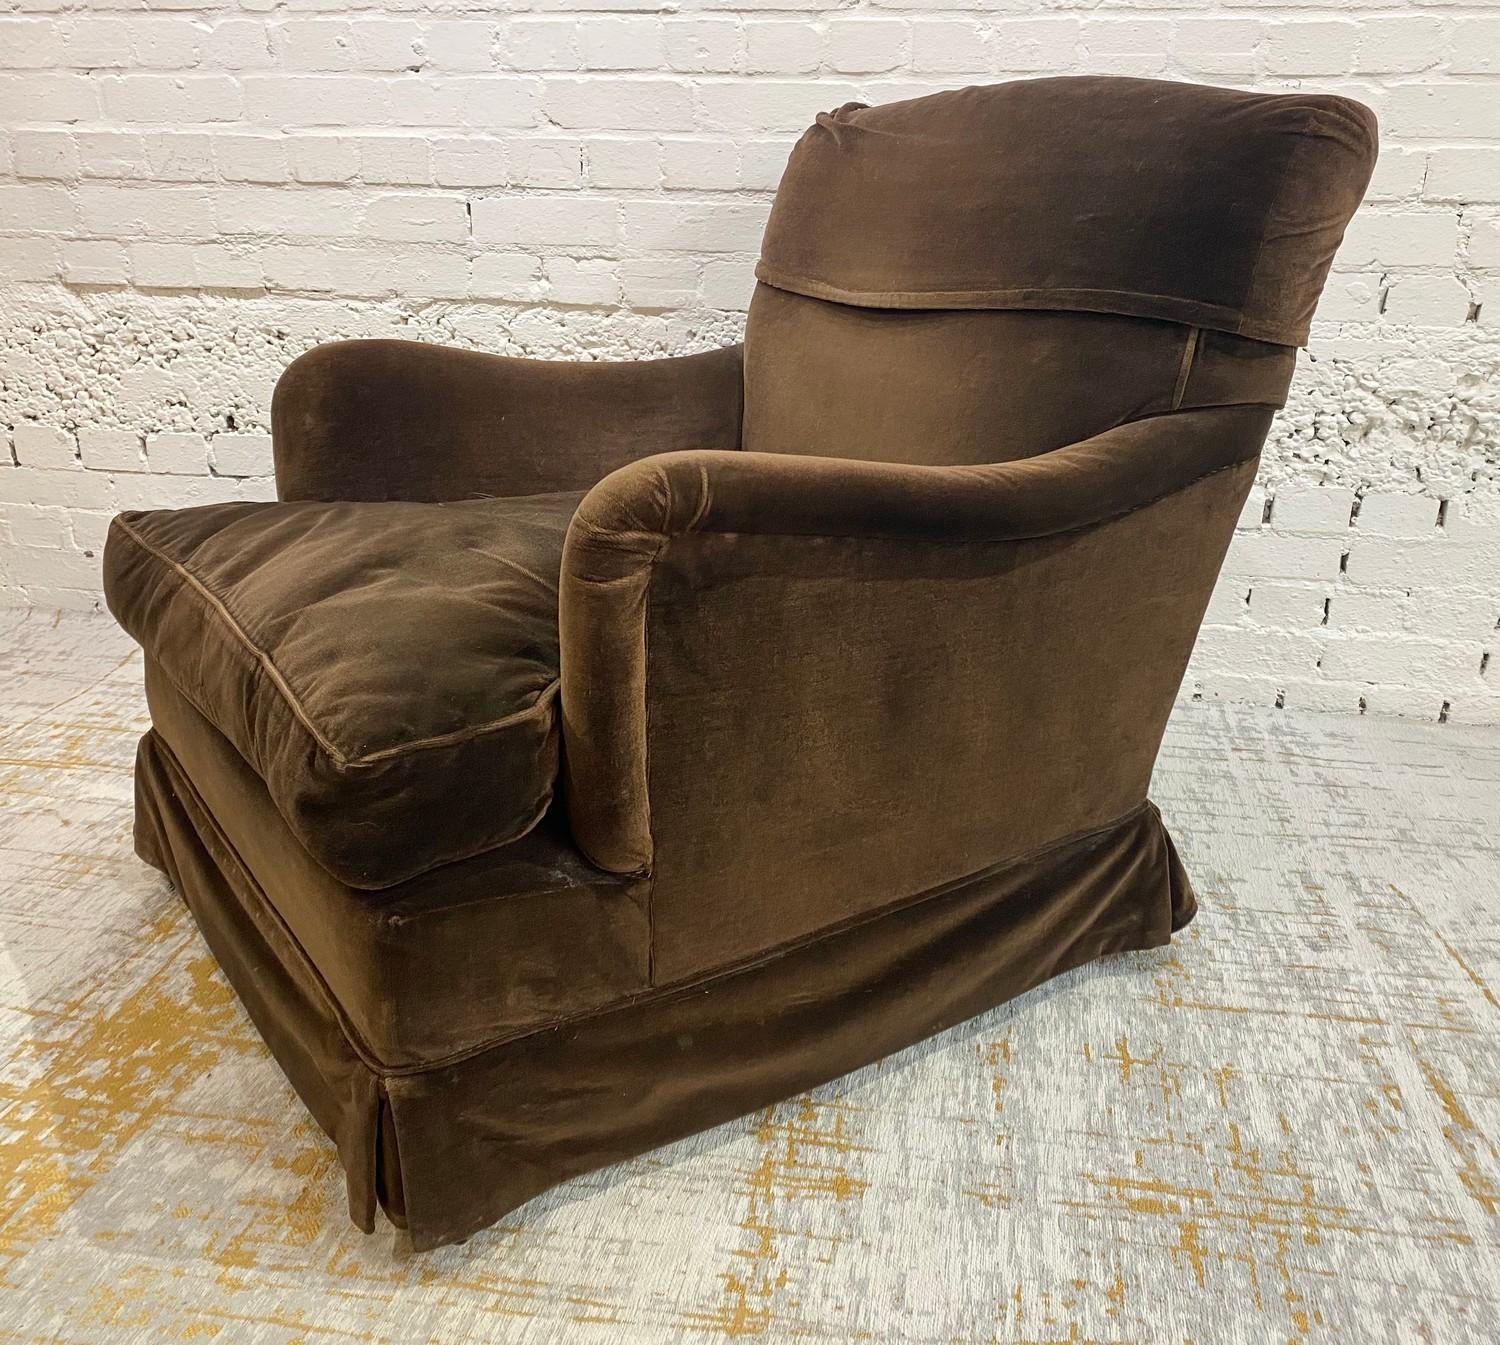 HOWARD AND SONS BRIDGEWATER ARMCHAIR, stamped 'Howard Chairs, 48 Sth Audley St London W.1 2385?, - Image 2 of 14